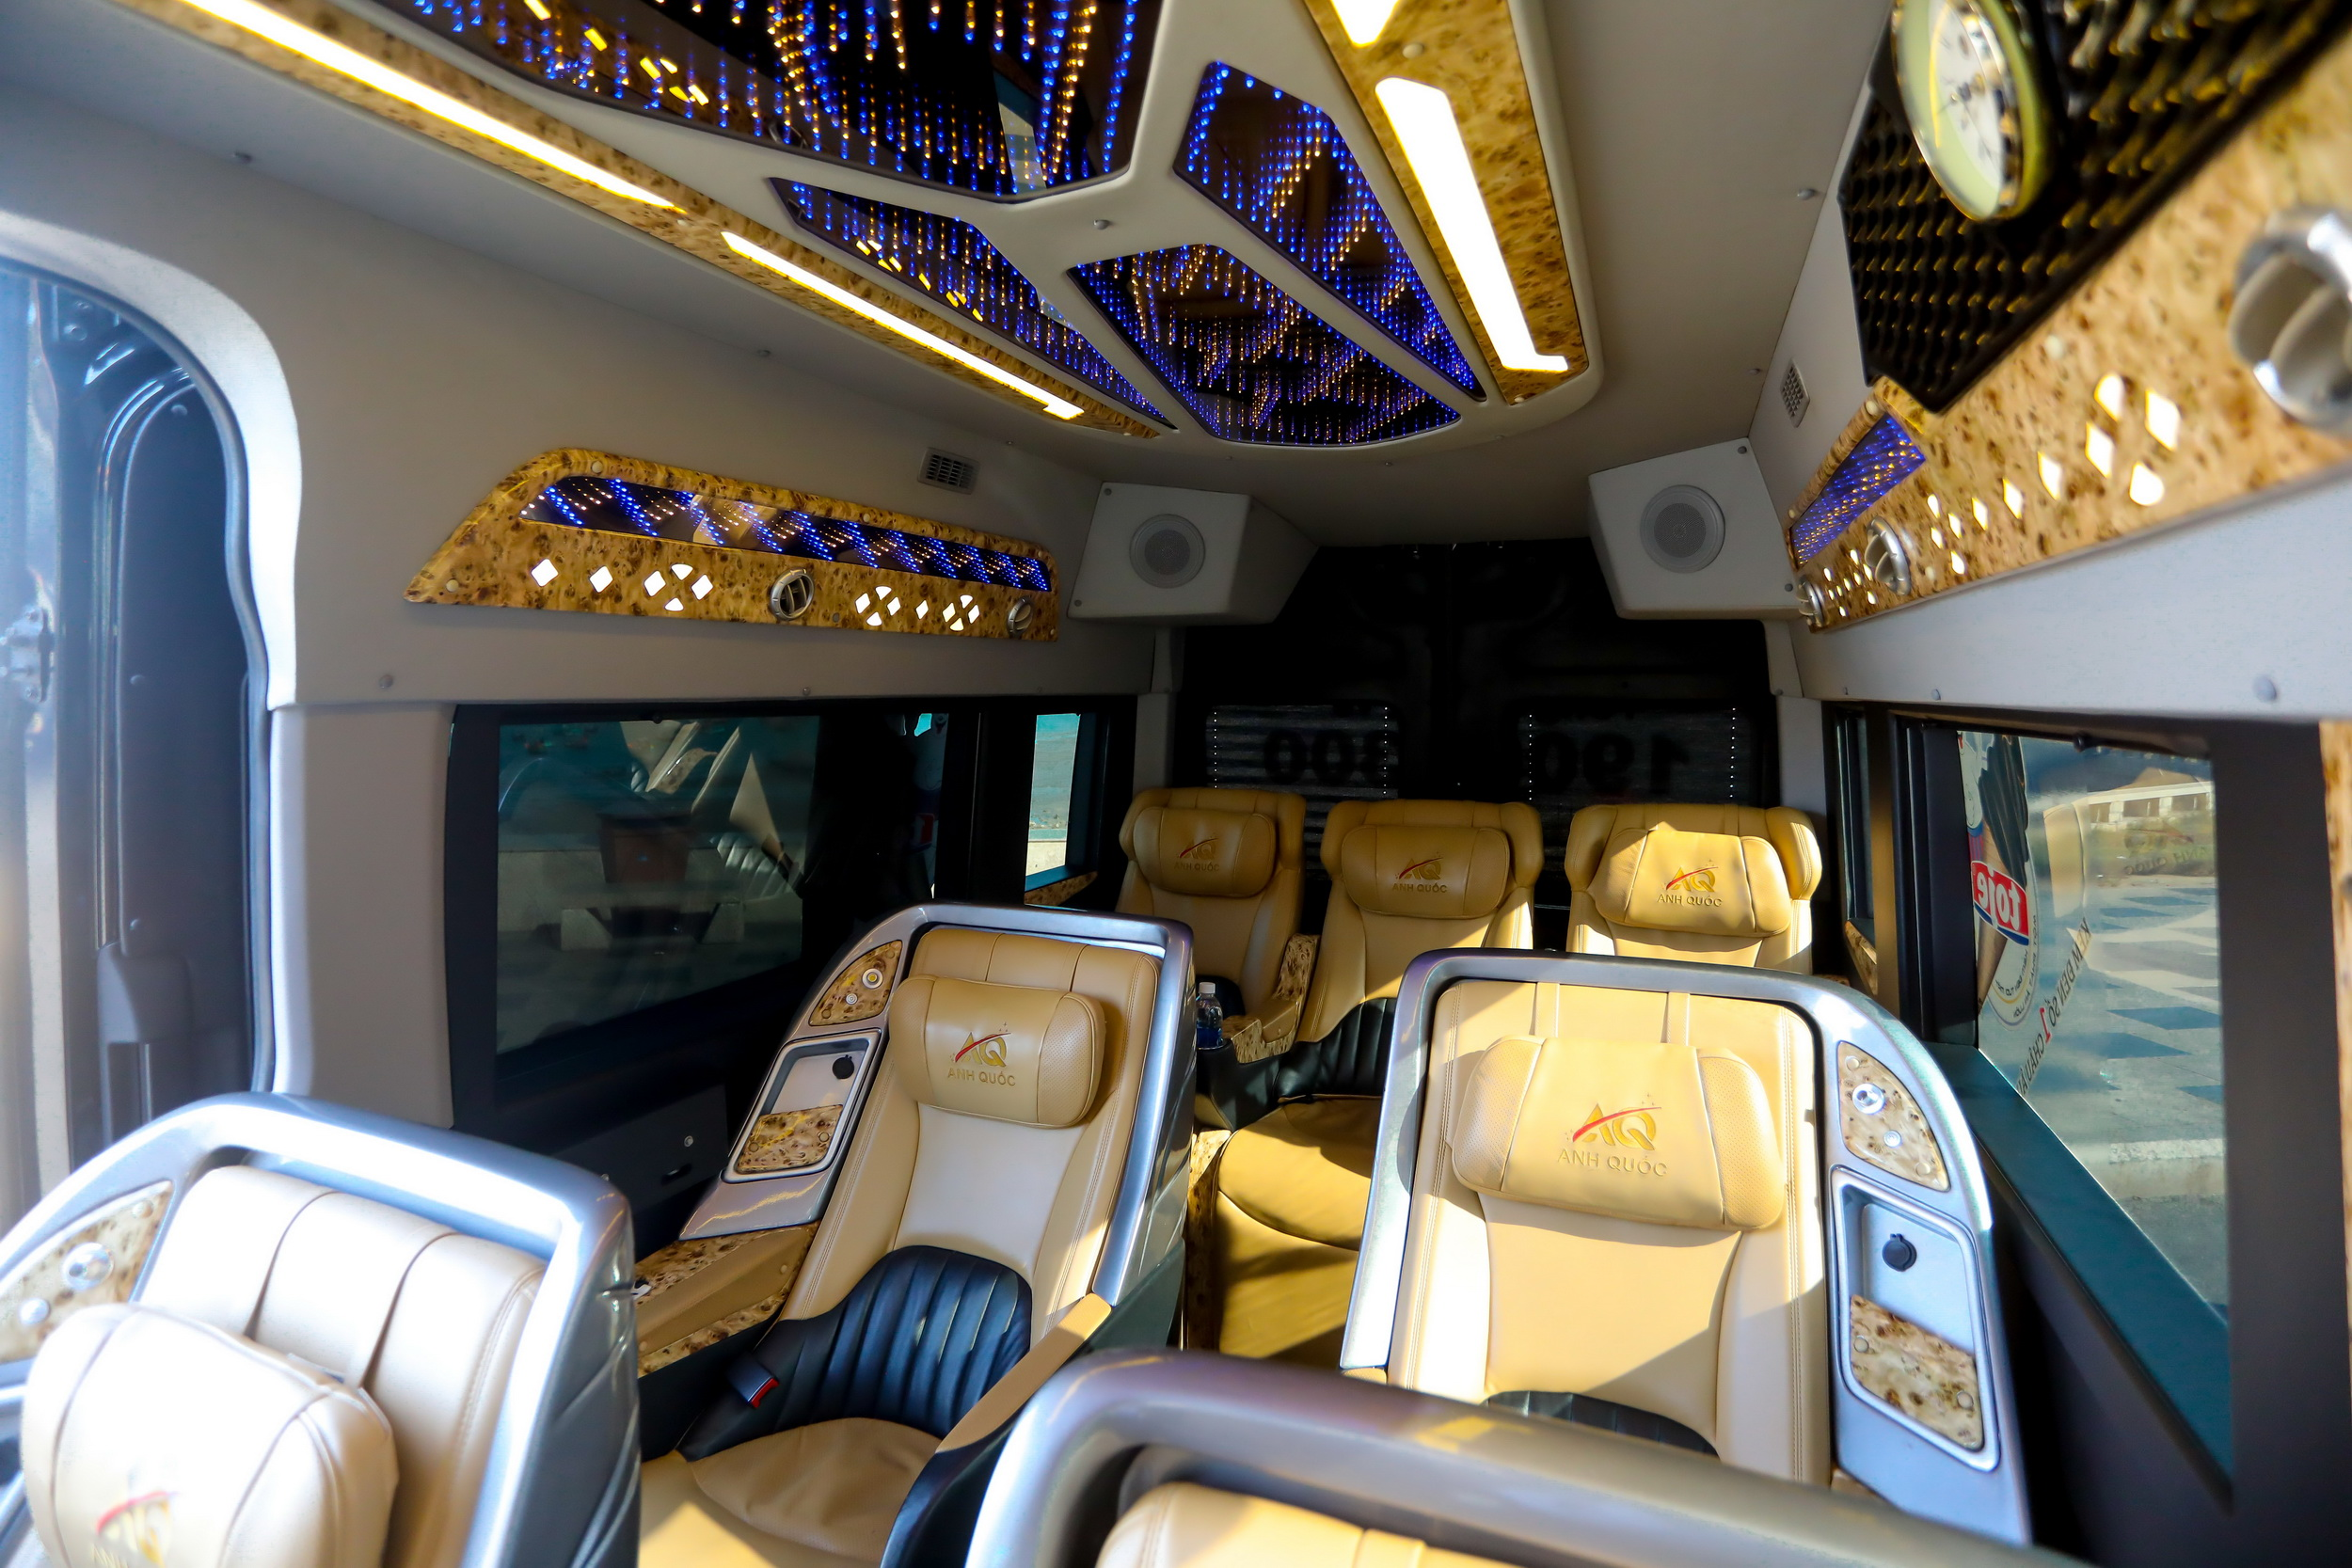 Nội thất xe limousine Anh Quốc